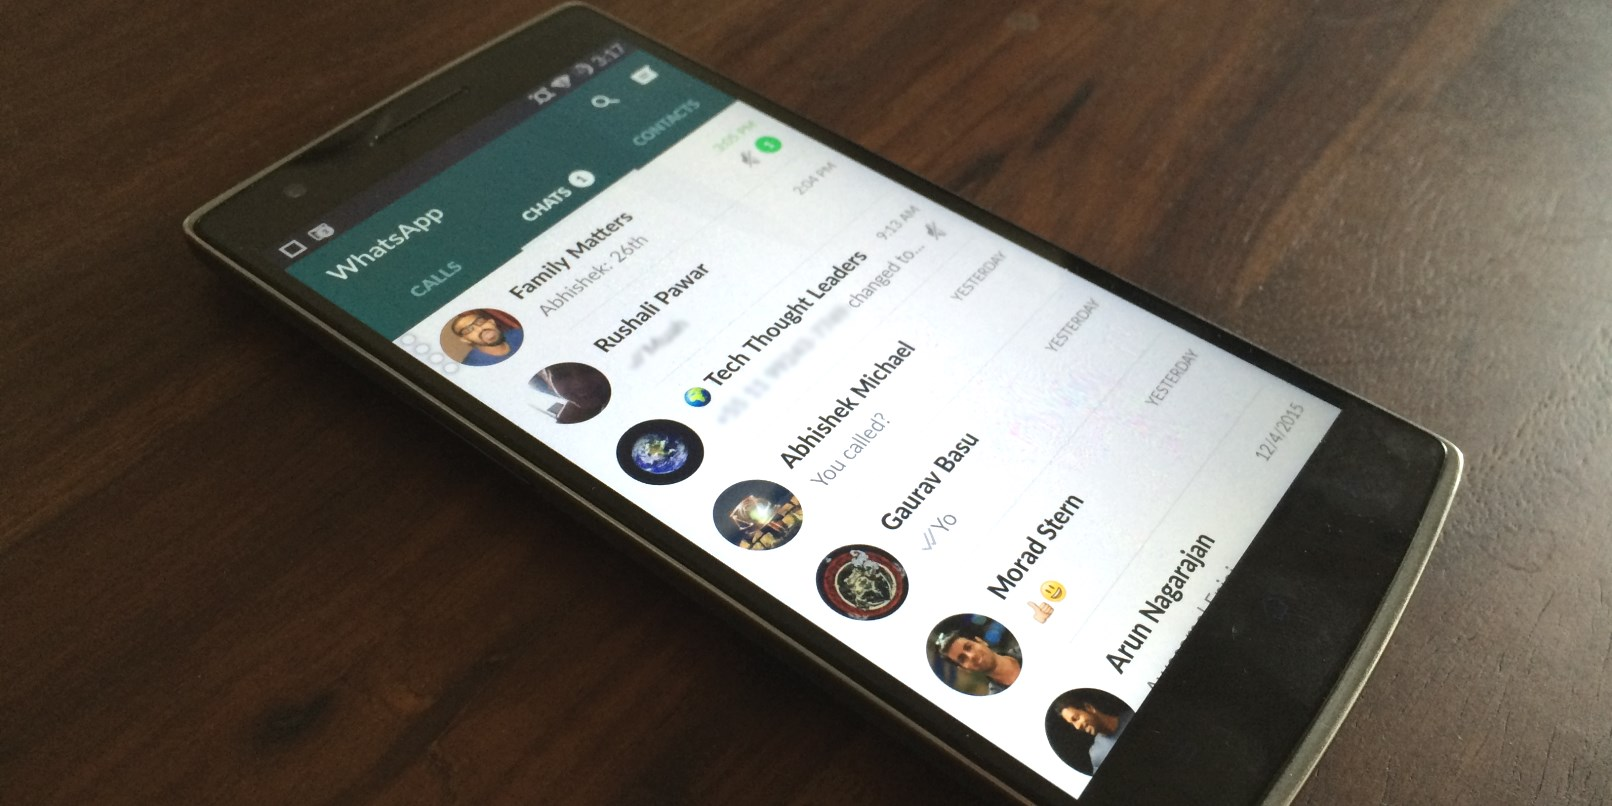 Whatsapp Gets a Material Design Update on Android